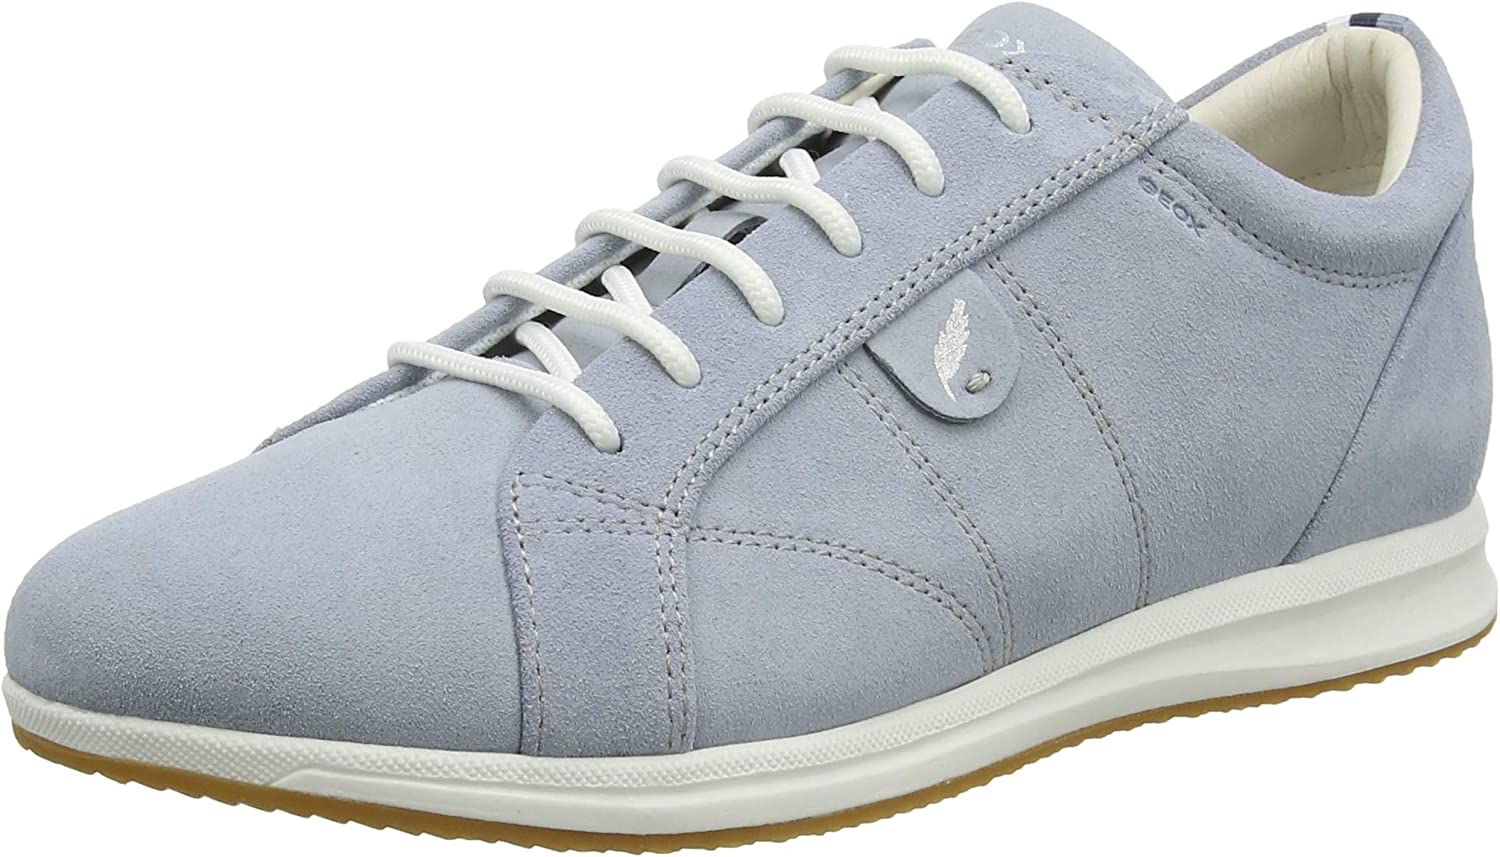 Geox Women's D Avery a Low-Top Sneakers